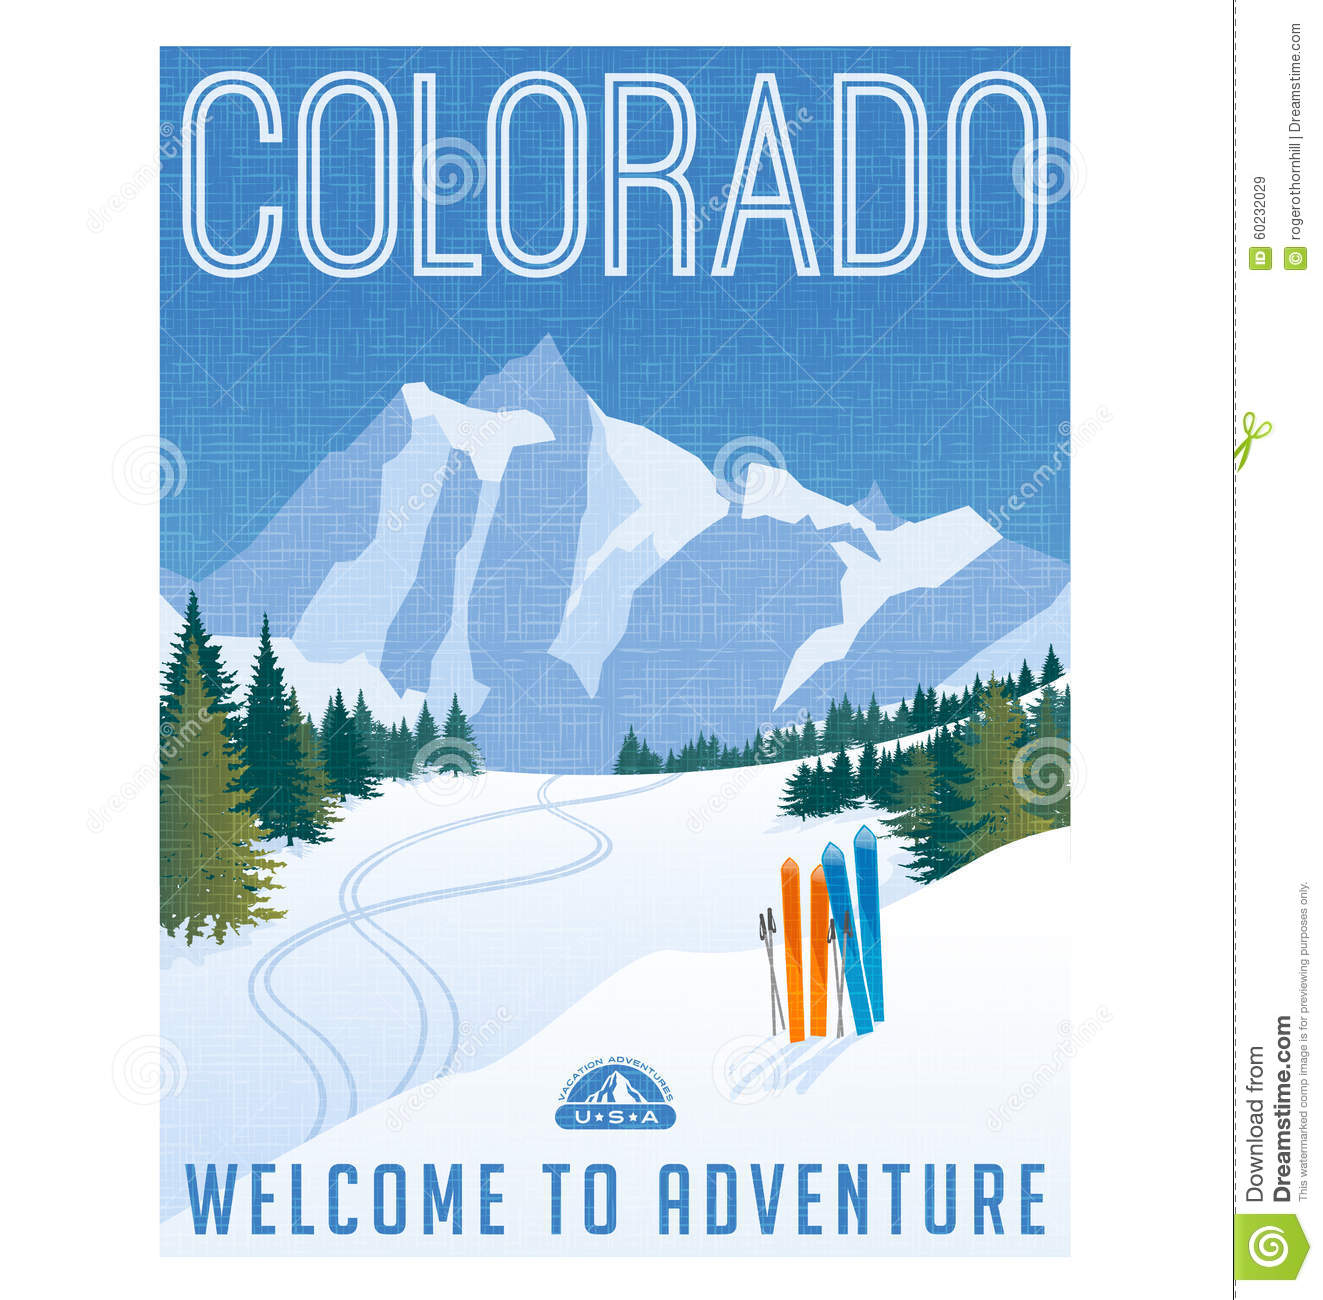 Retro Style Travel Poster Or Sticker United States